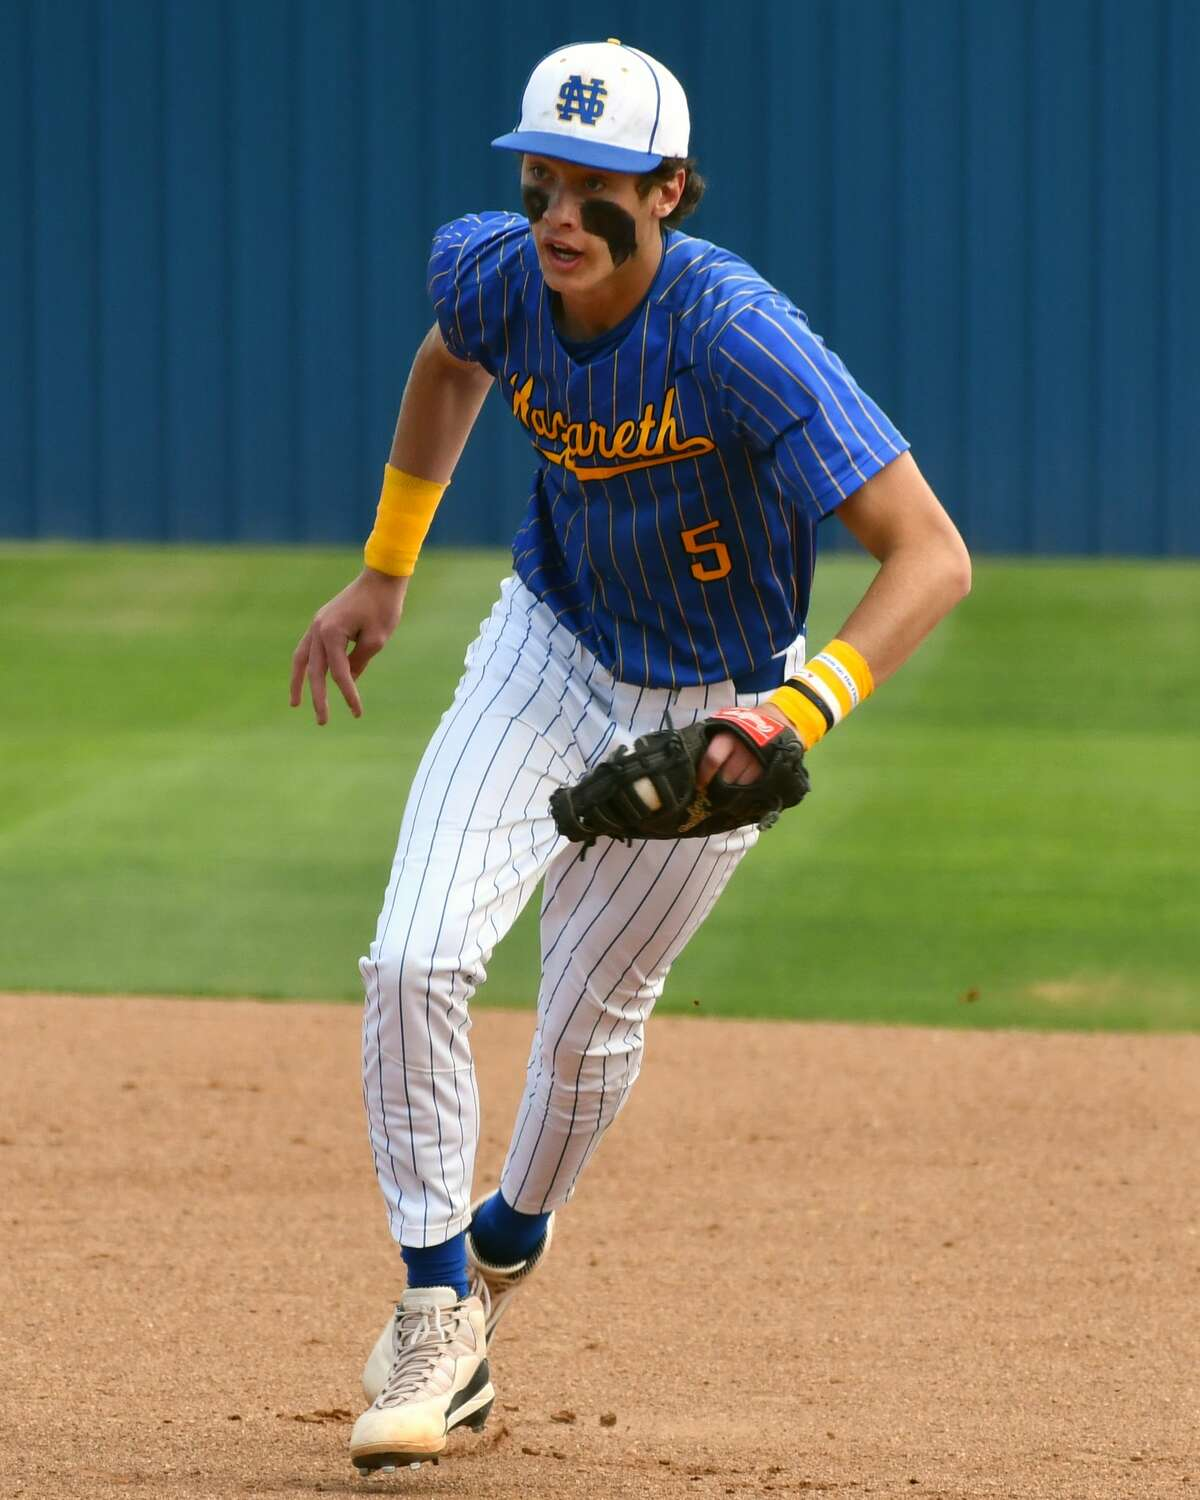 Nazareth's Kaden Cleavinger was a first team All-State selection in Class 1A as a pitcher.